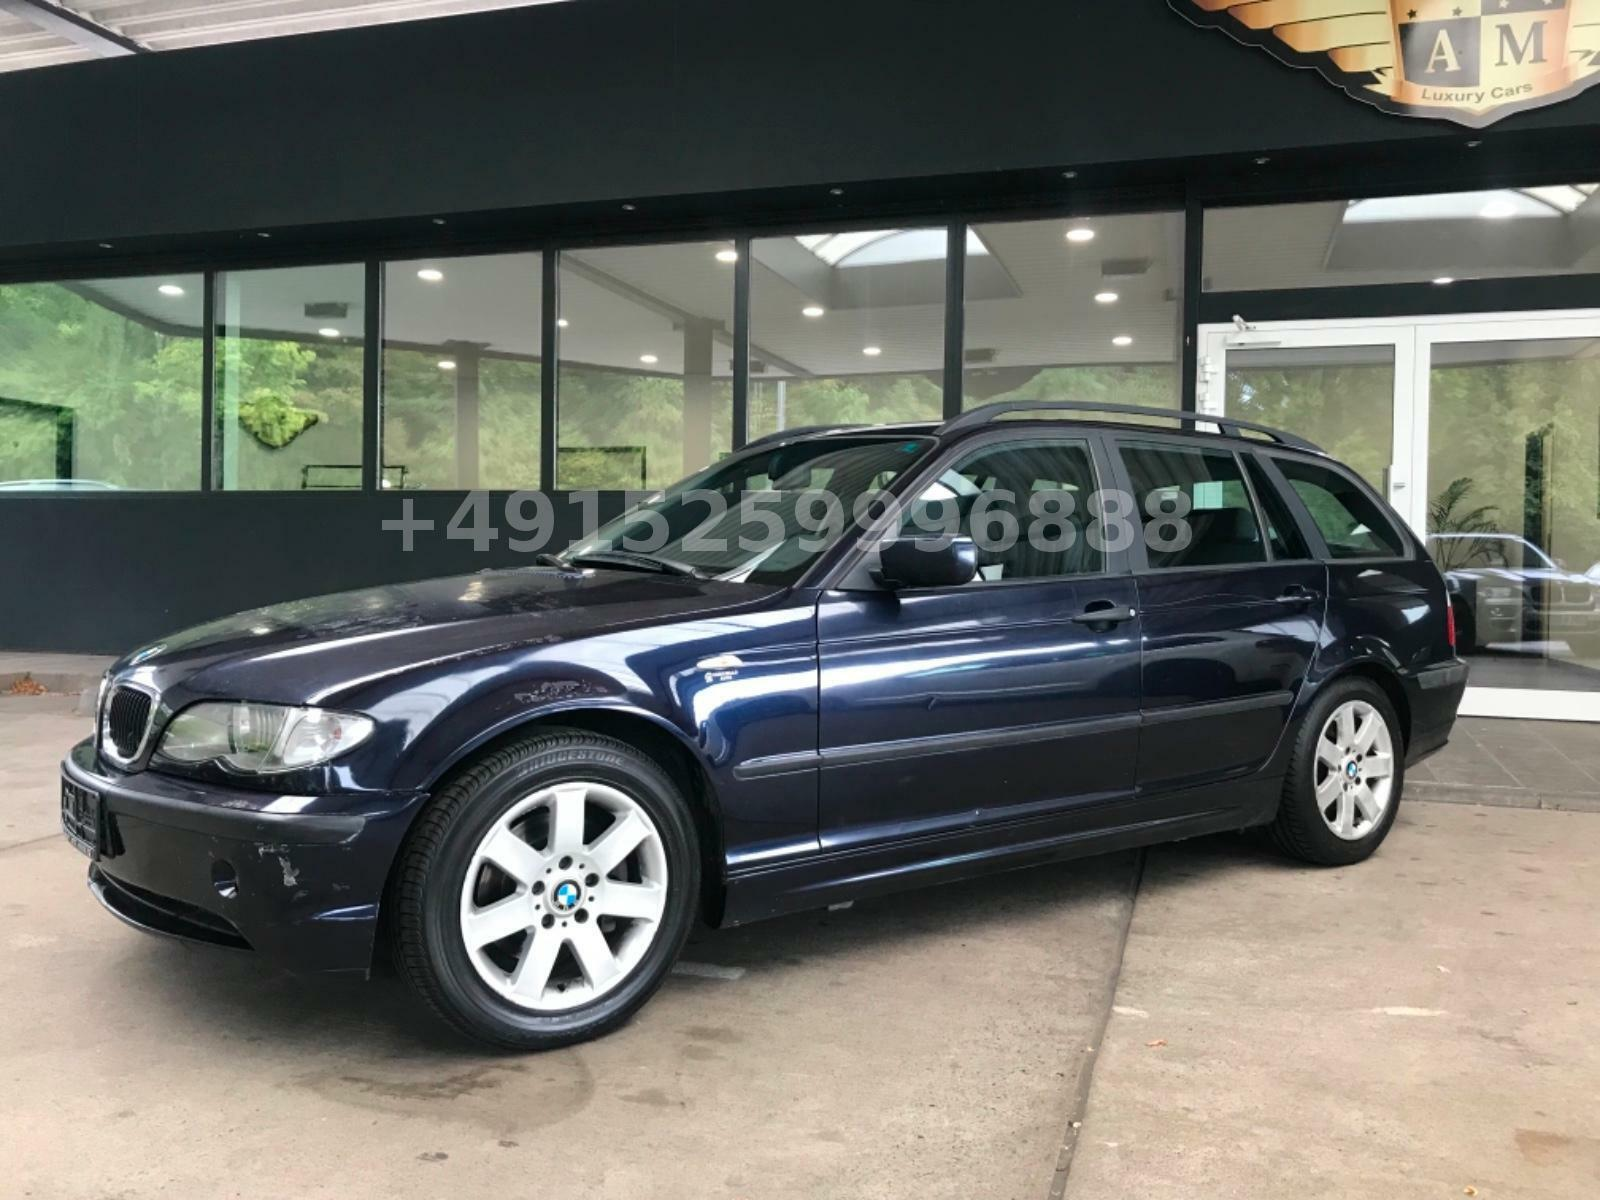 BMW 320dtouring/